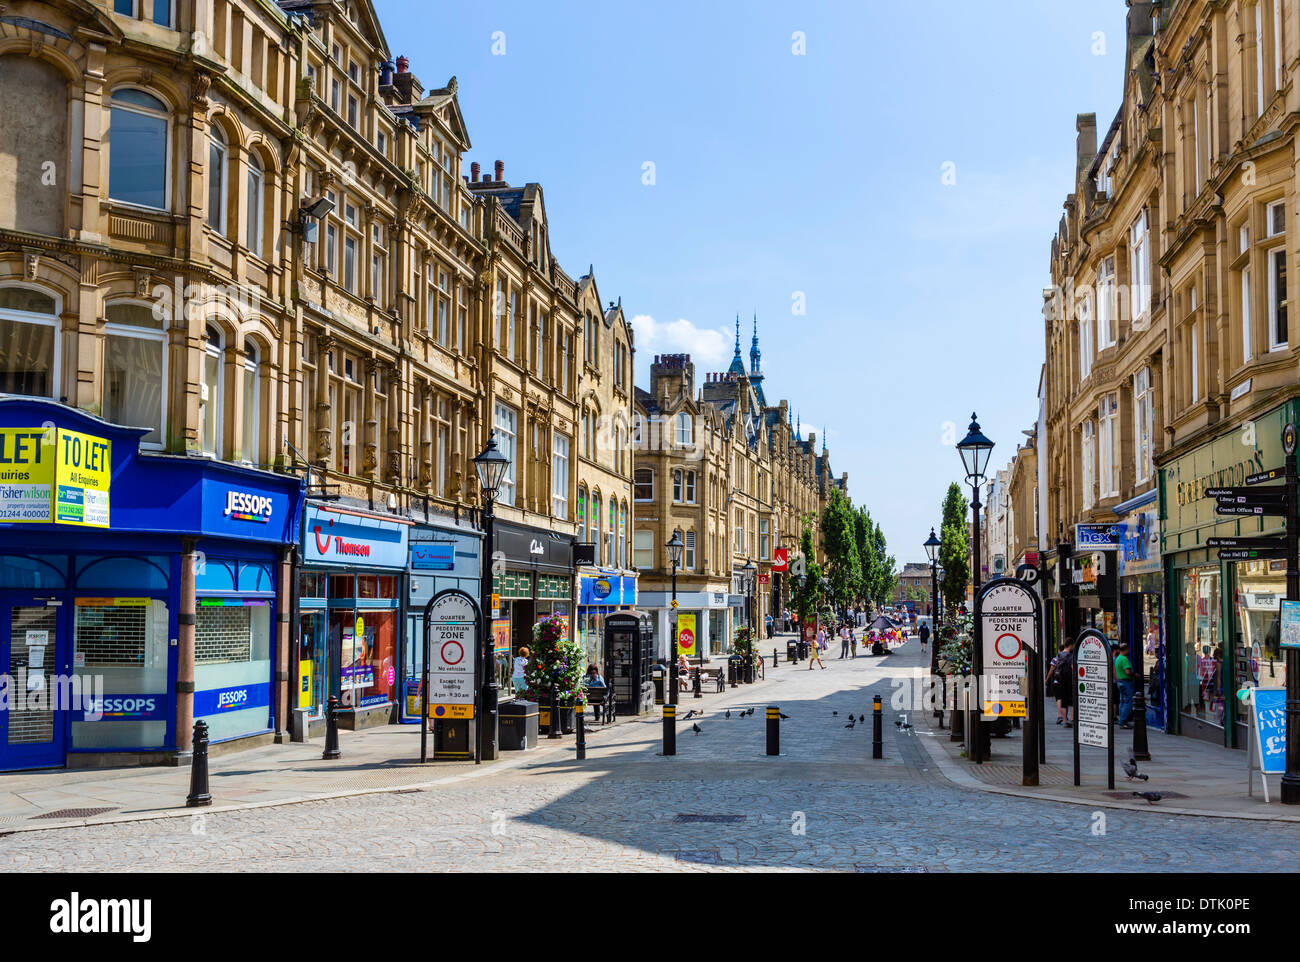 Shops on Cornmarket in the city centre, Halifax, West Yorkshire, England, UK - Stock Image